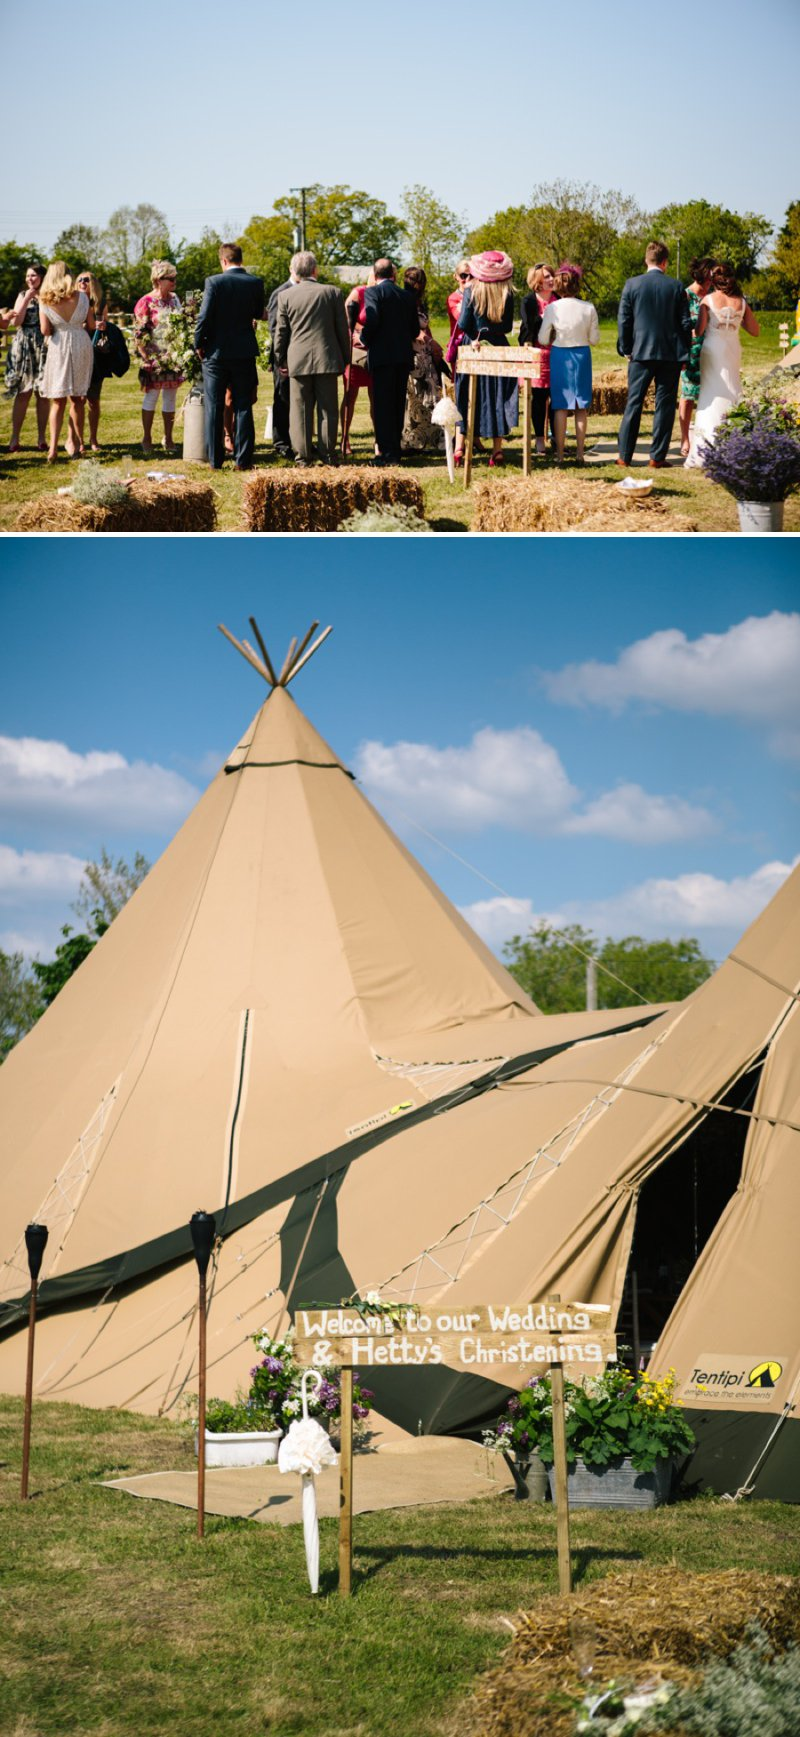 A Rustic Tipi Wedding And Christening In The Cheshire